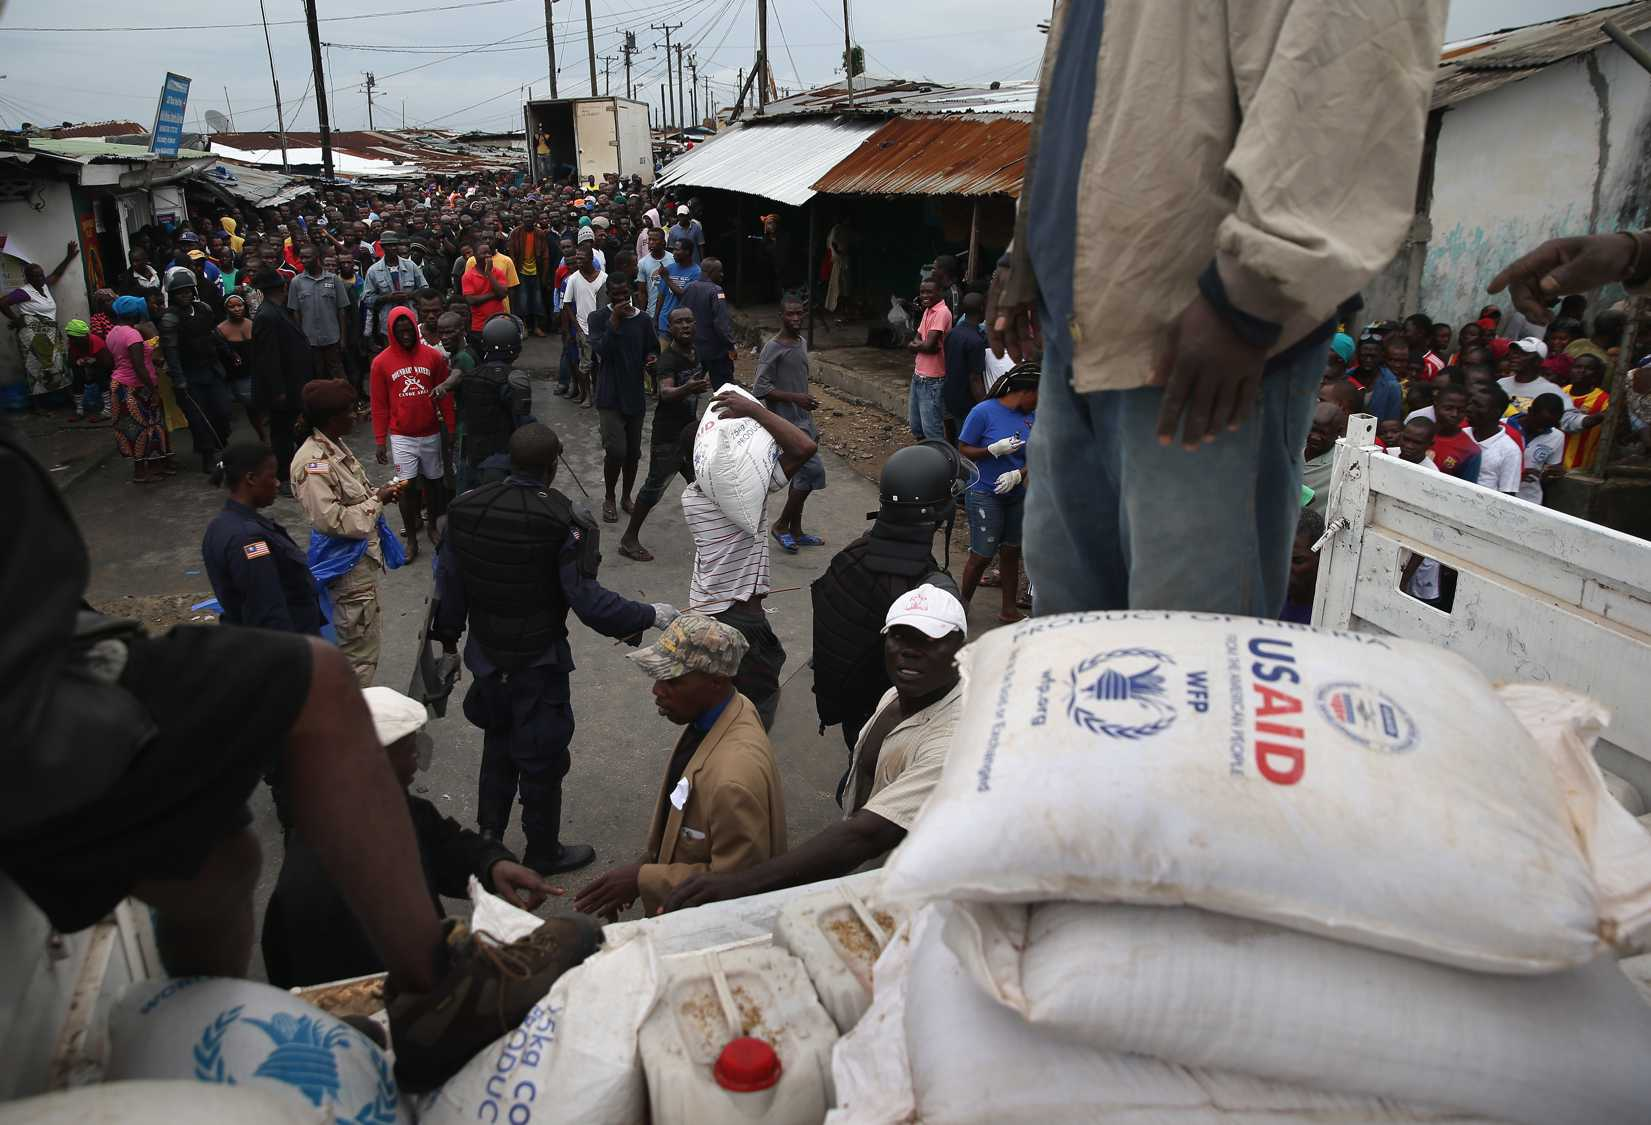 Residents of the West Point slum receive food aid during the second day of the government's Ebola quarantine on their neighborhood on August 21, 2014 in Monrovia, Liberia.